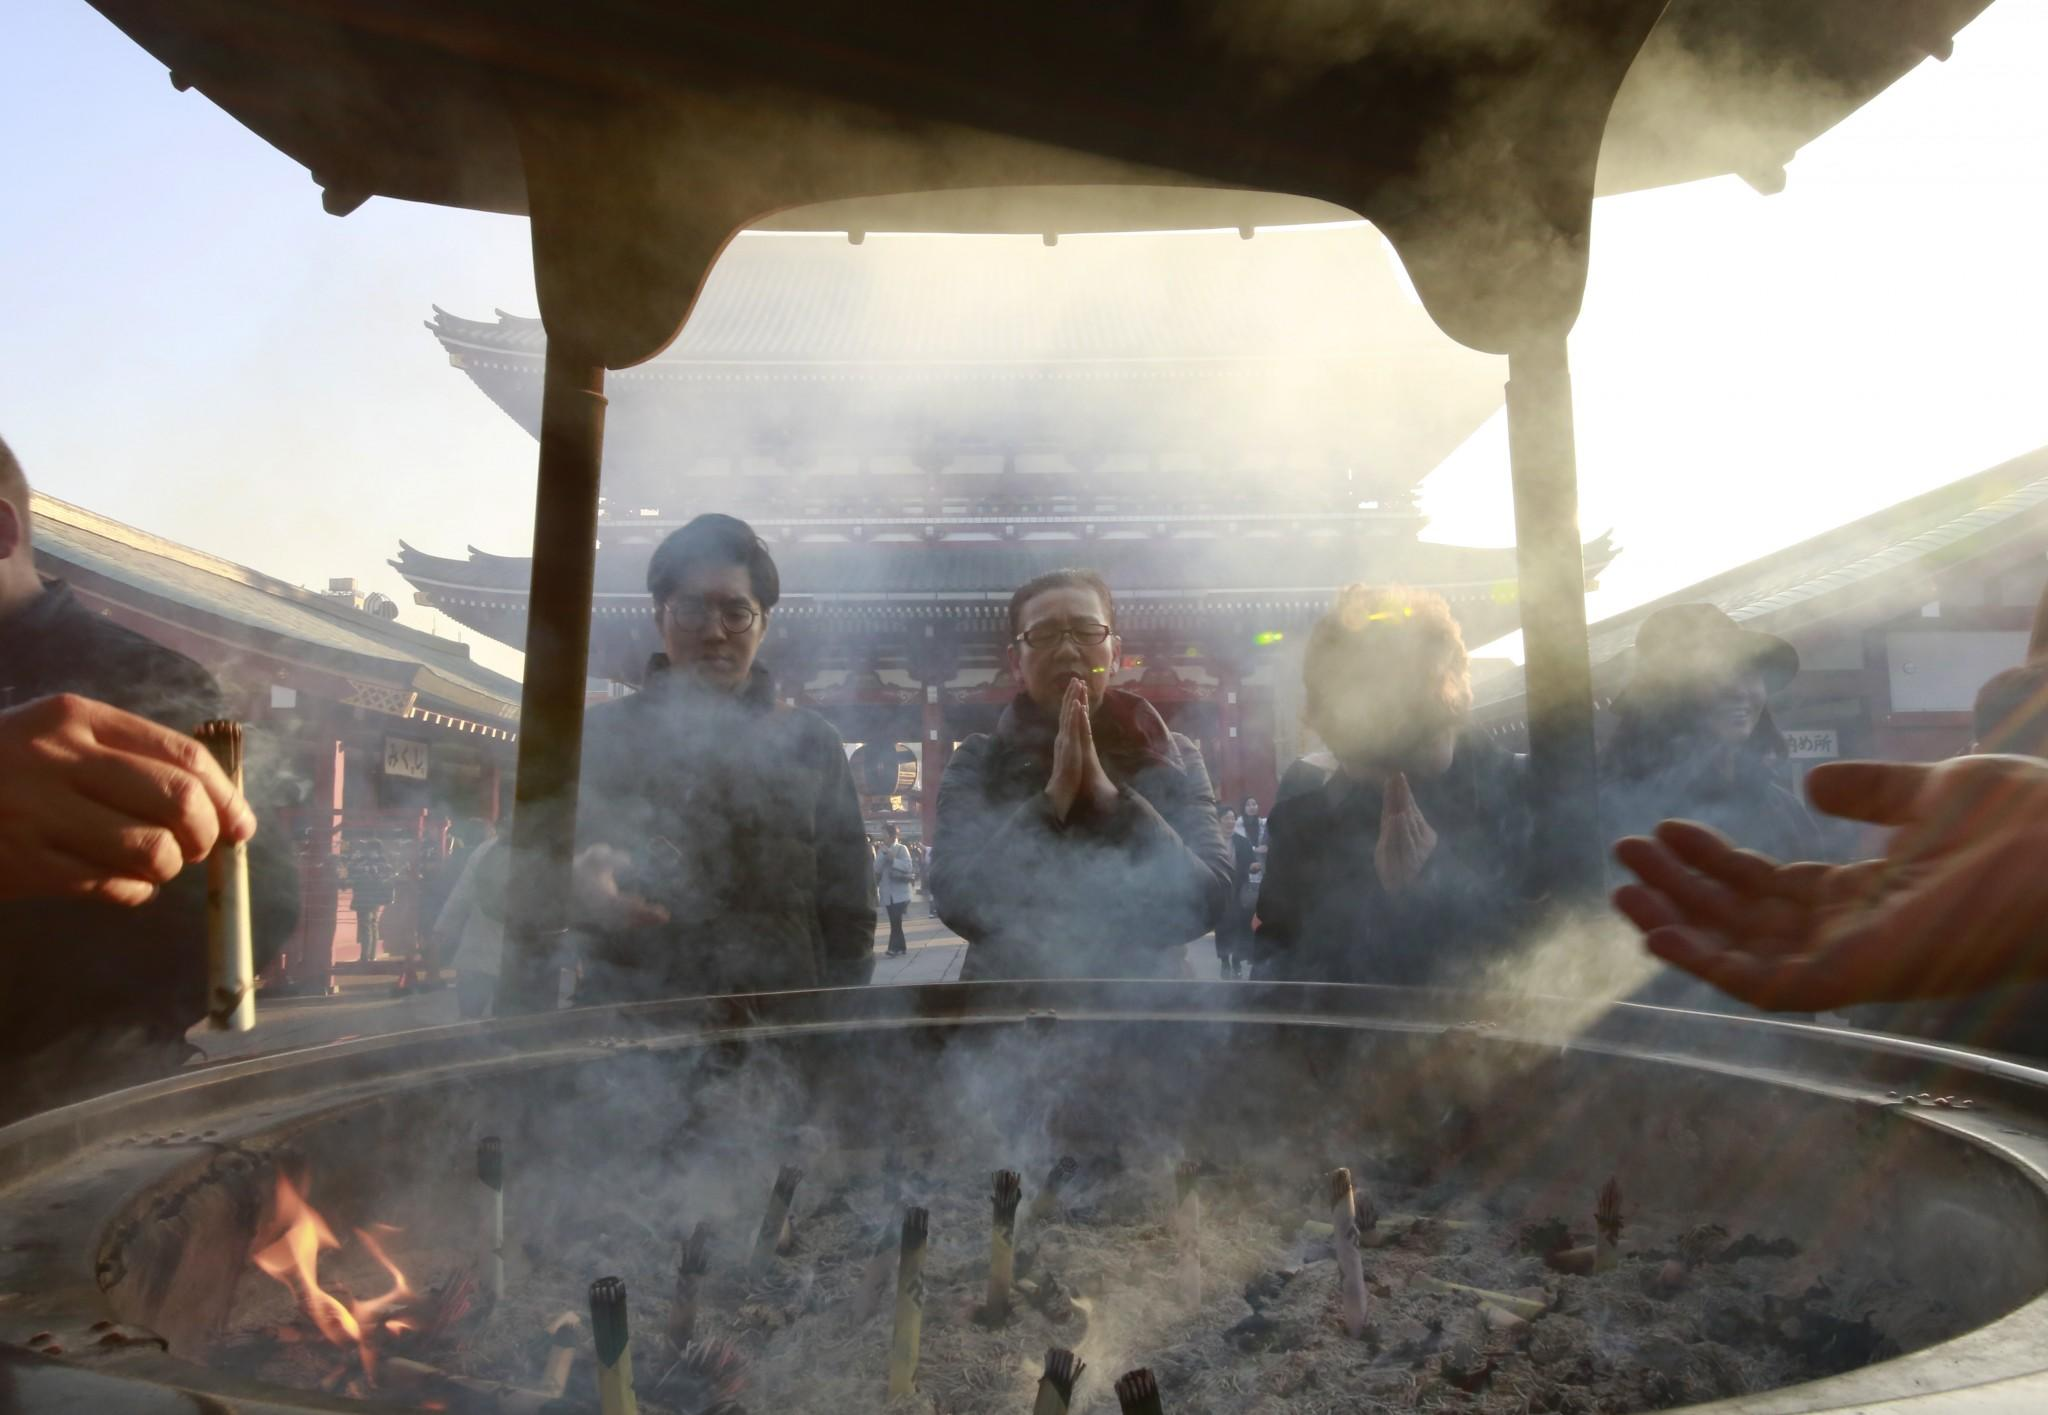 <p>Worshippers gather around a huge incense burner as they offer their prayers at the Sensoji Buddhist temple in Asakusa district of Tokyo, Tuesday, Dec. 20, 2016. Asakusa annually draws many tourists from around the world. (Photo: Shizuo Kambayashi/AP) </p>